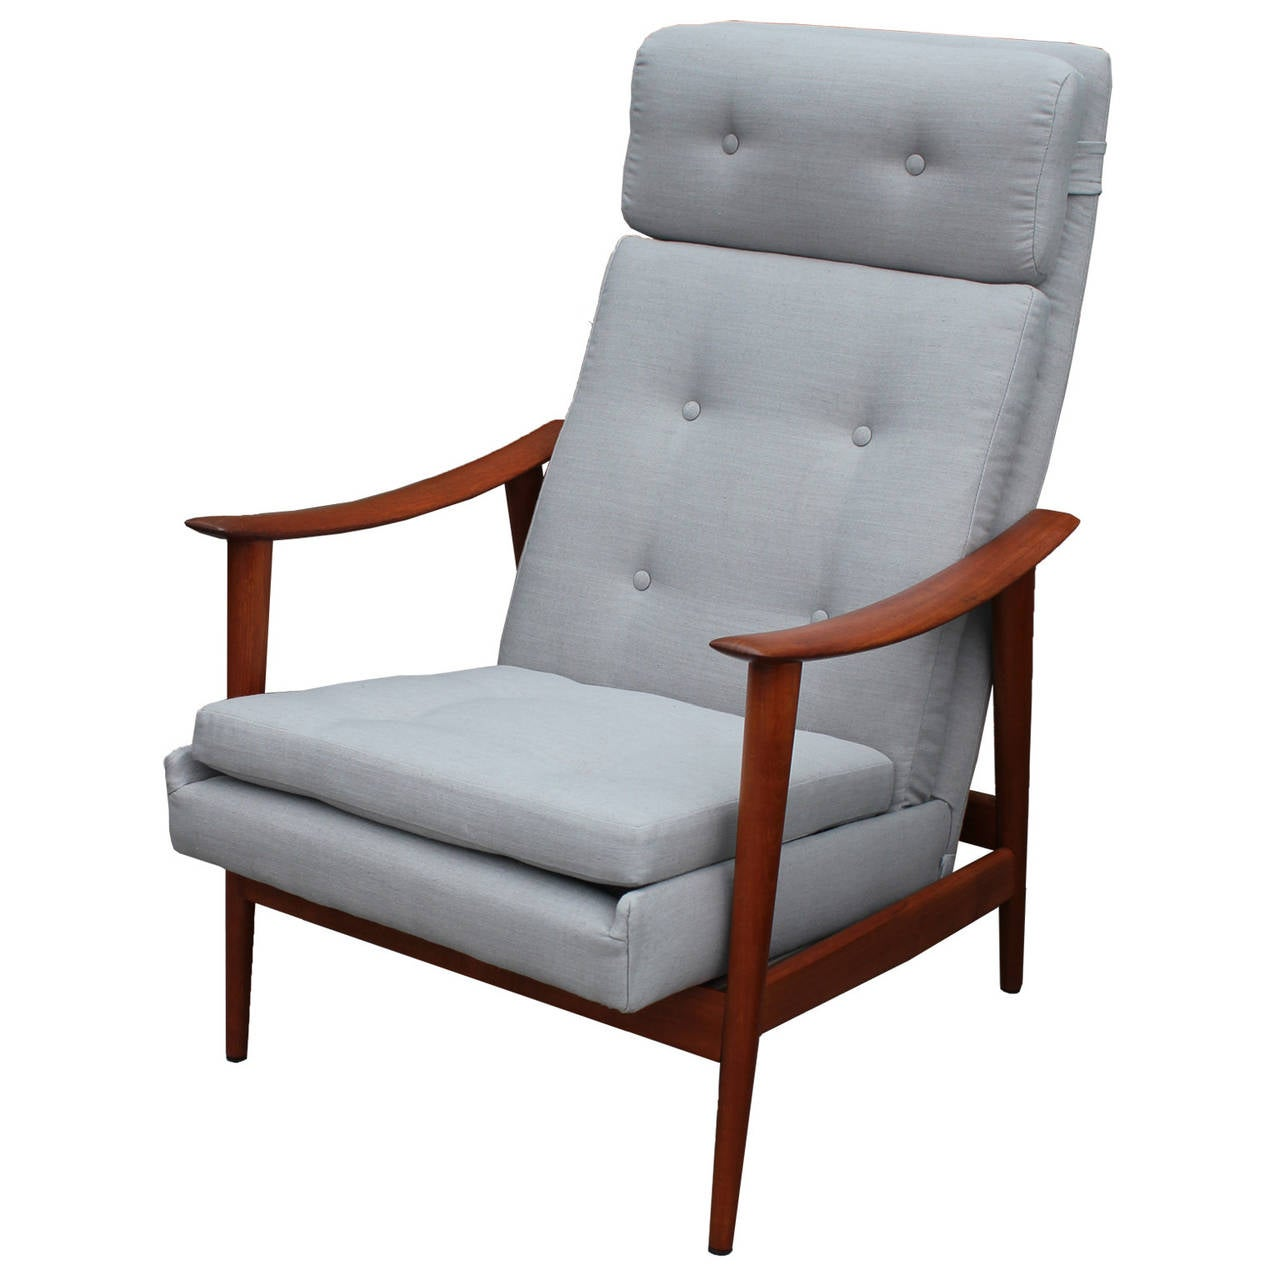 Restored Scandinavian Teak Recliner in Grey Linen 2  sc 1 st  1stDibs : danish recliner chair - islam-shia.org